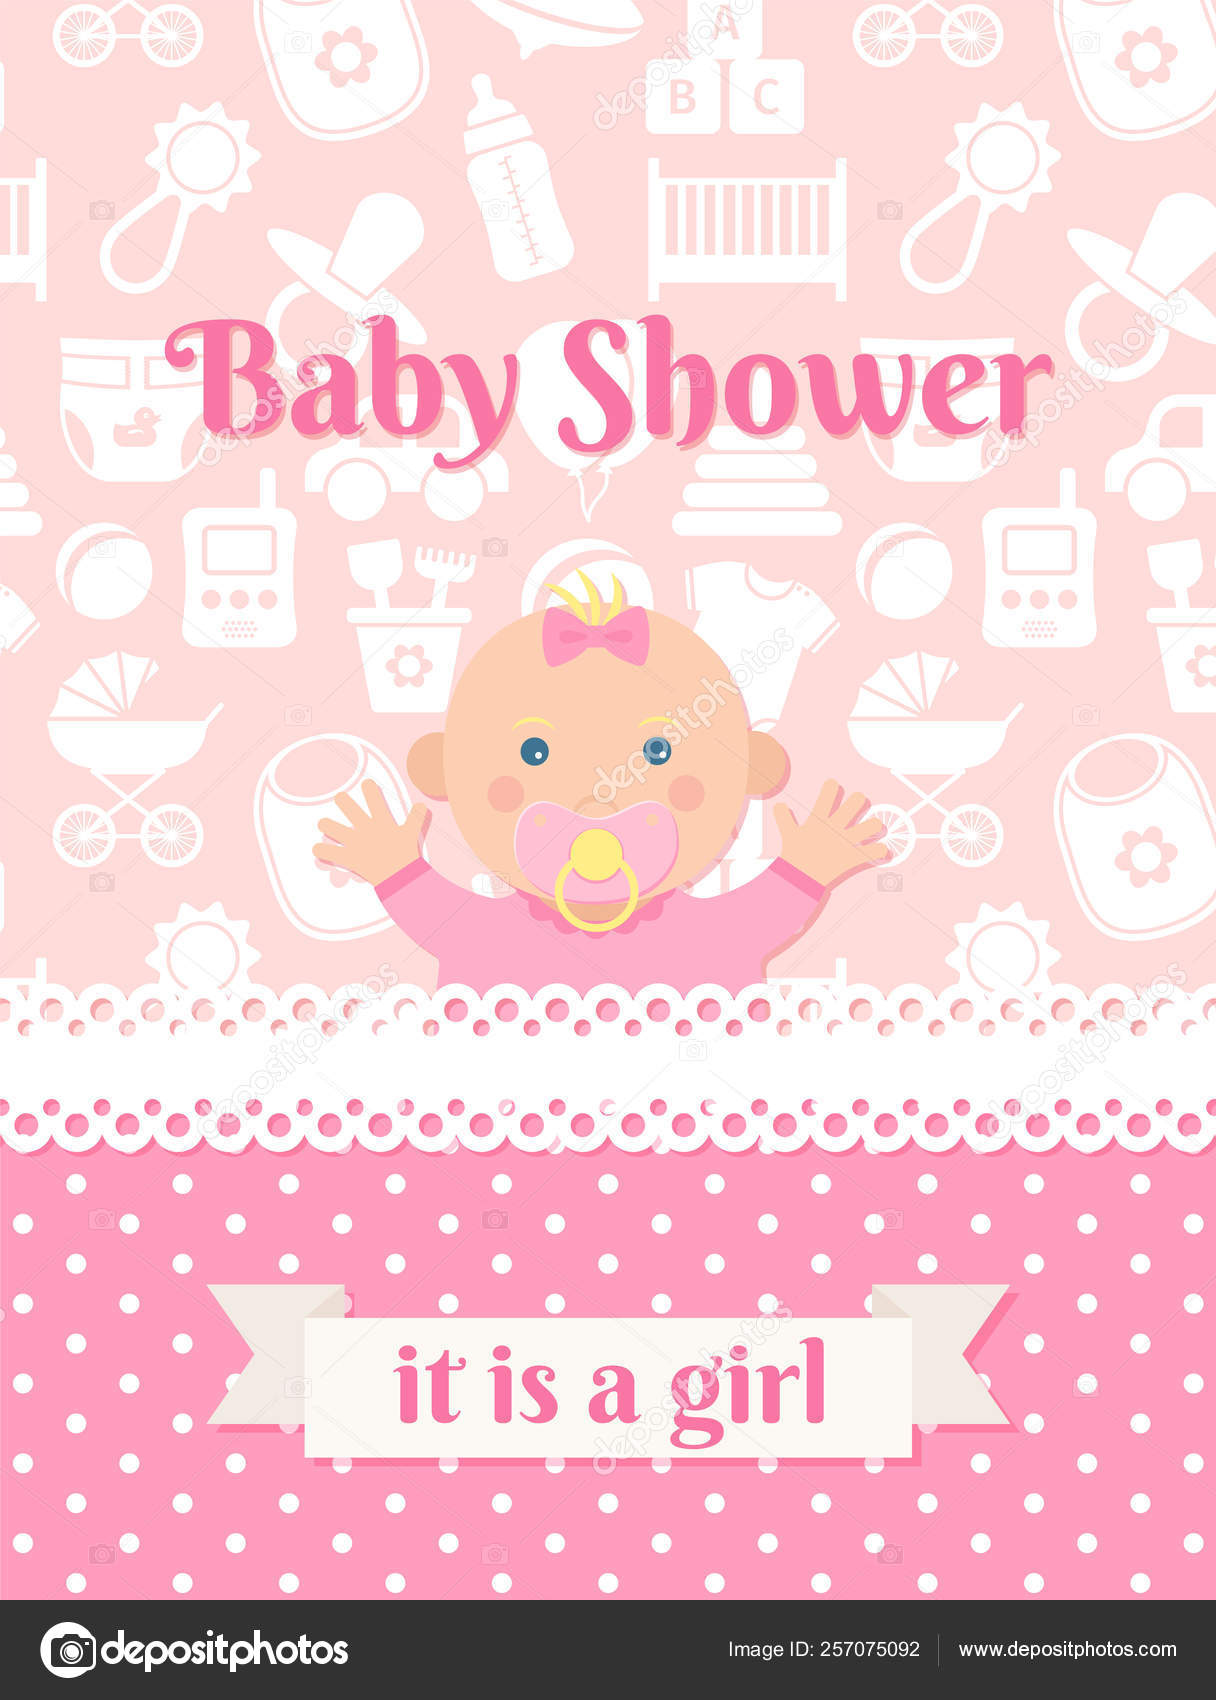 Baby Shower Card Design Vector Illustration Birthday Party